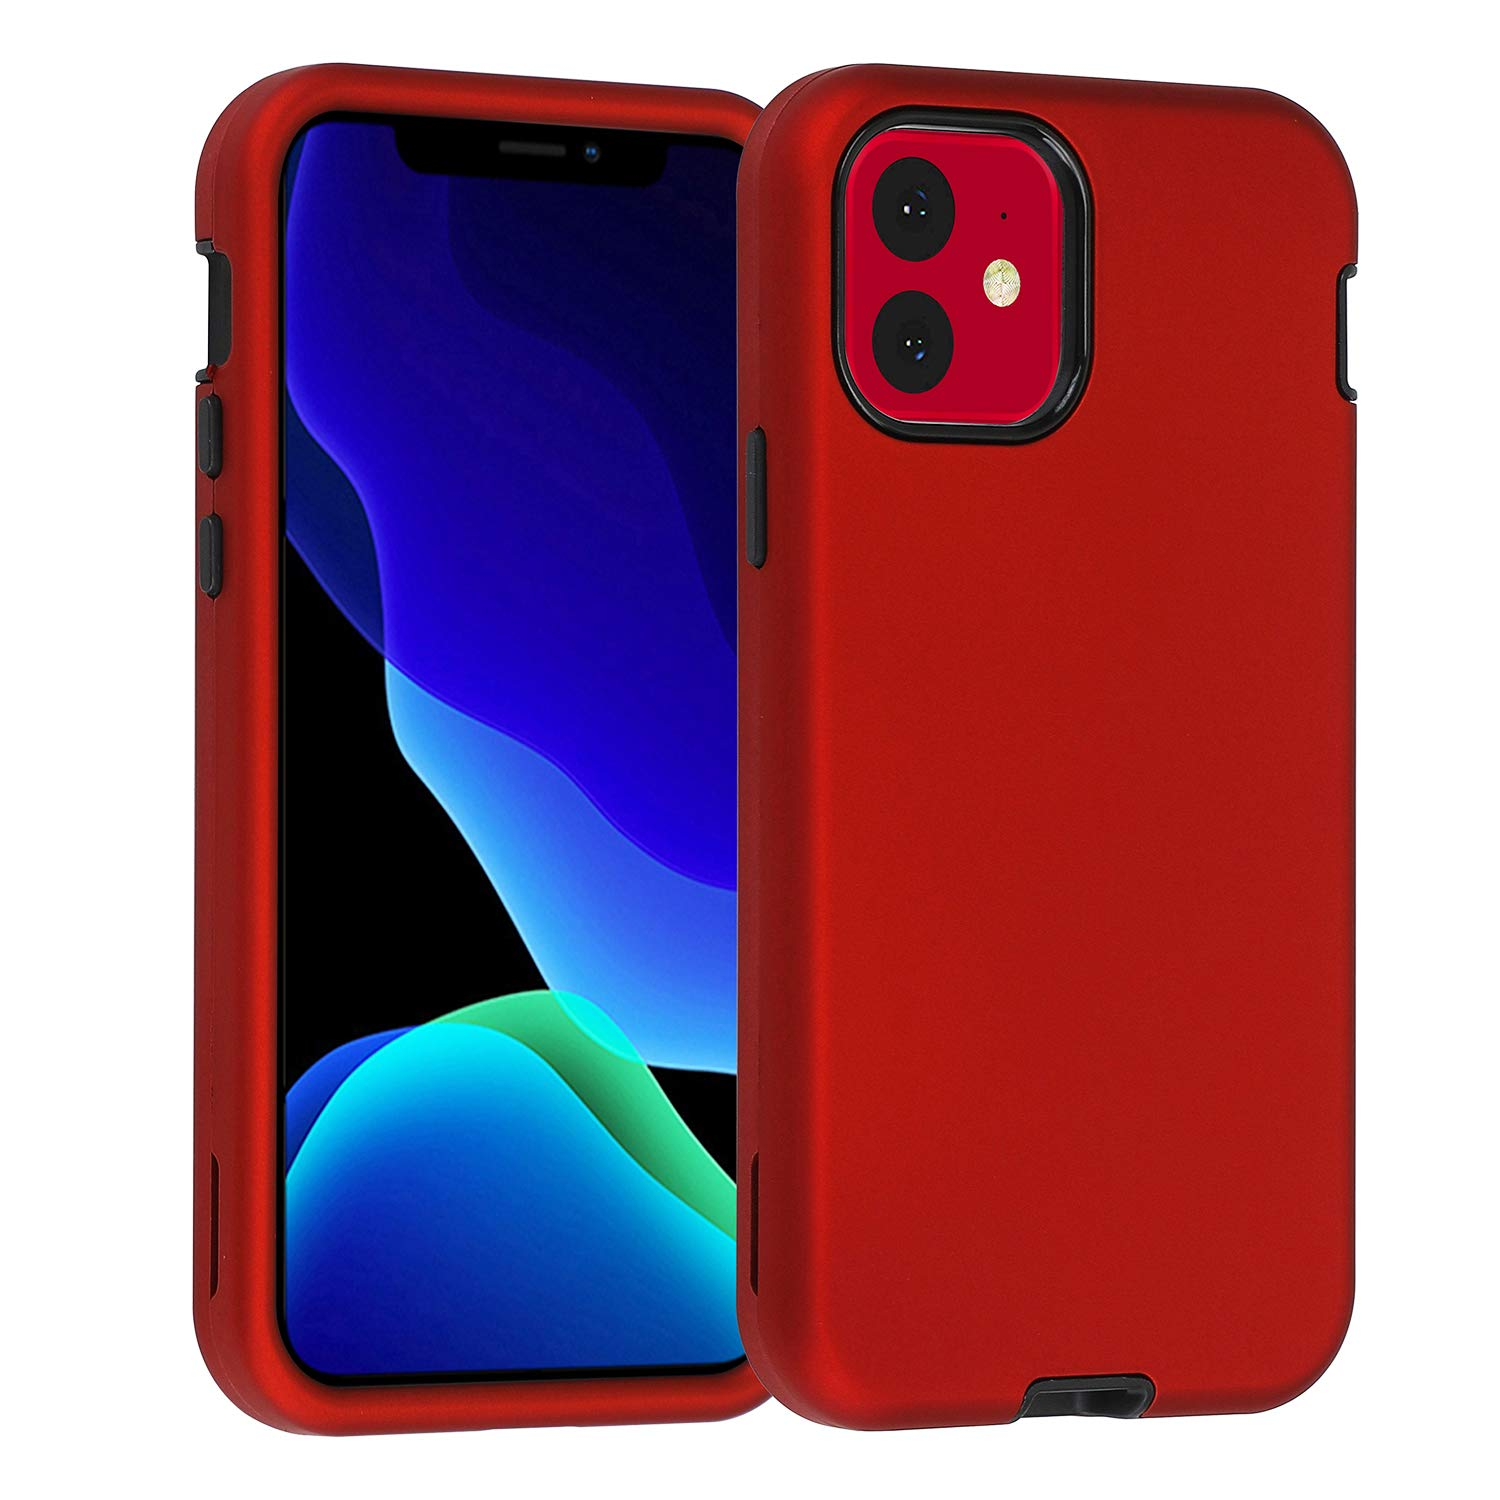 Heavy Duty PU Ring Kickstand iPhone 8 Case Holder Case Hybrid Shock Absorbing Full-body Protection Impact Drop Proof Cover Anti-scrch Shell for Apple iPhone 8 purple